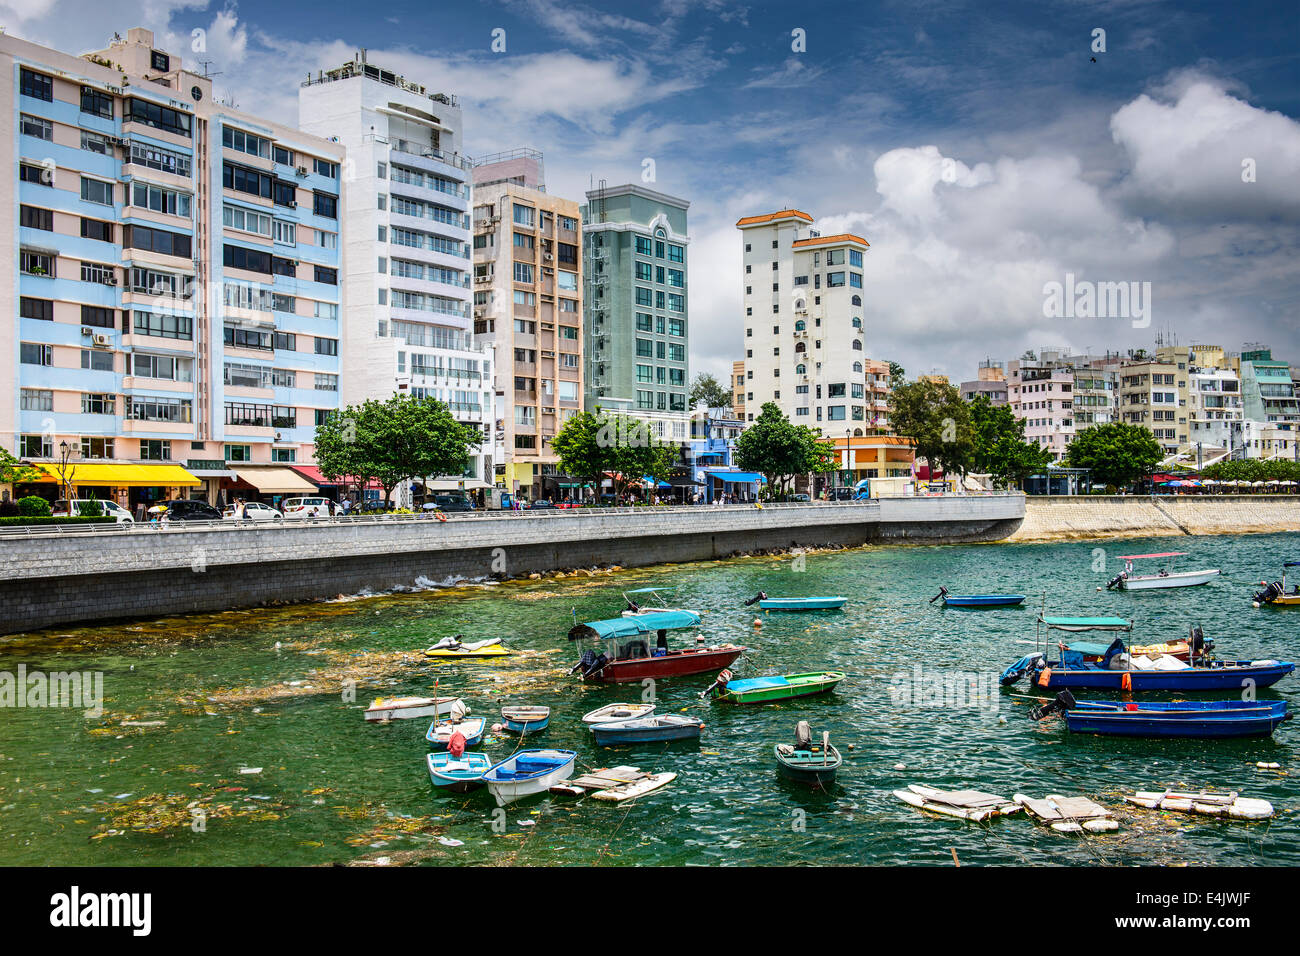 Stanely, Hong Kong, China skyline at the Main Street waterfront. Stock Photo